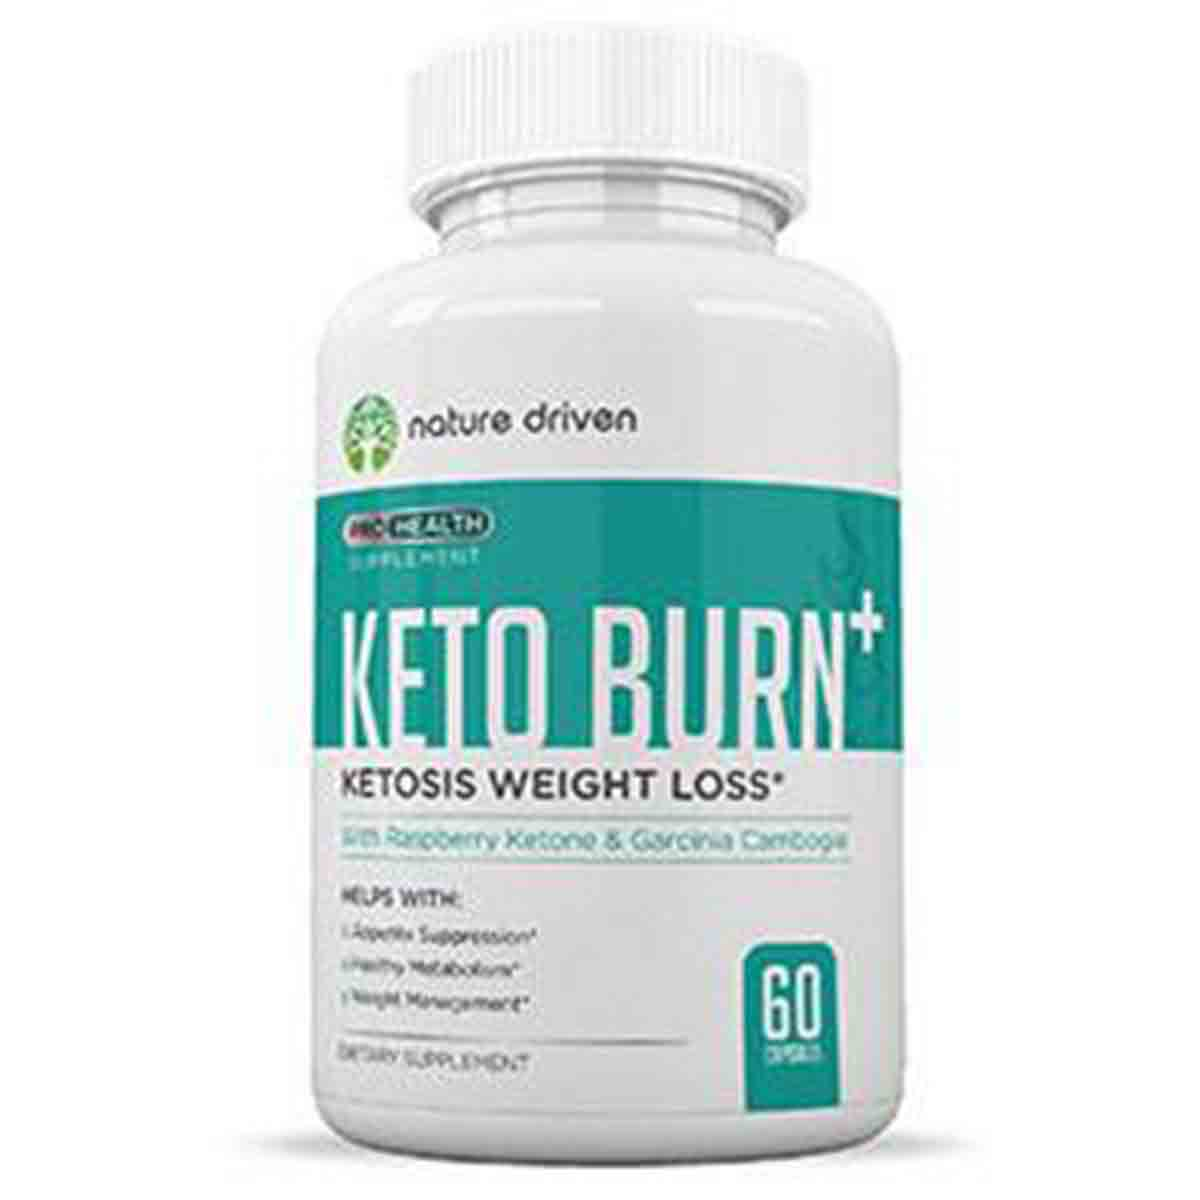 Nature Driven Keto Burn